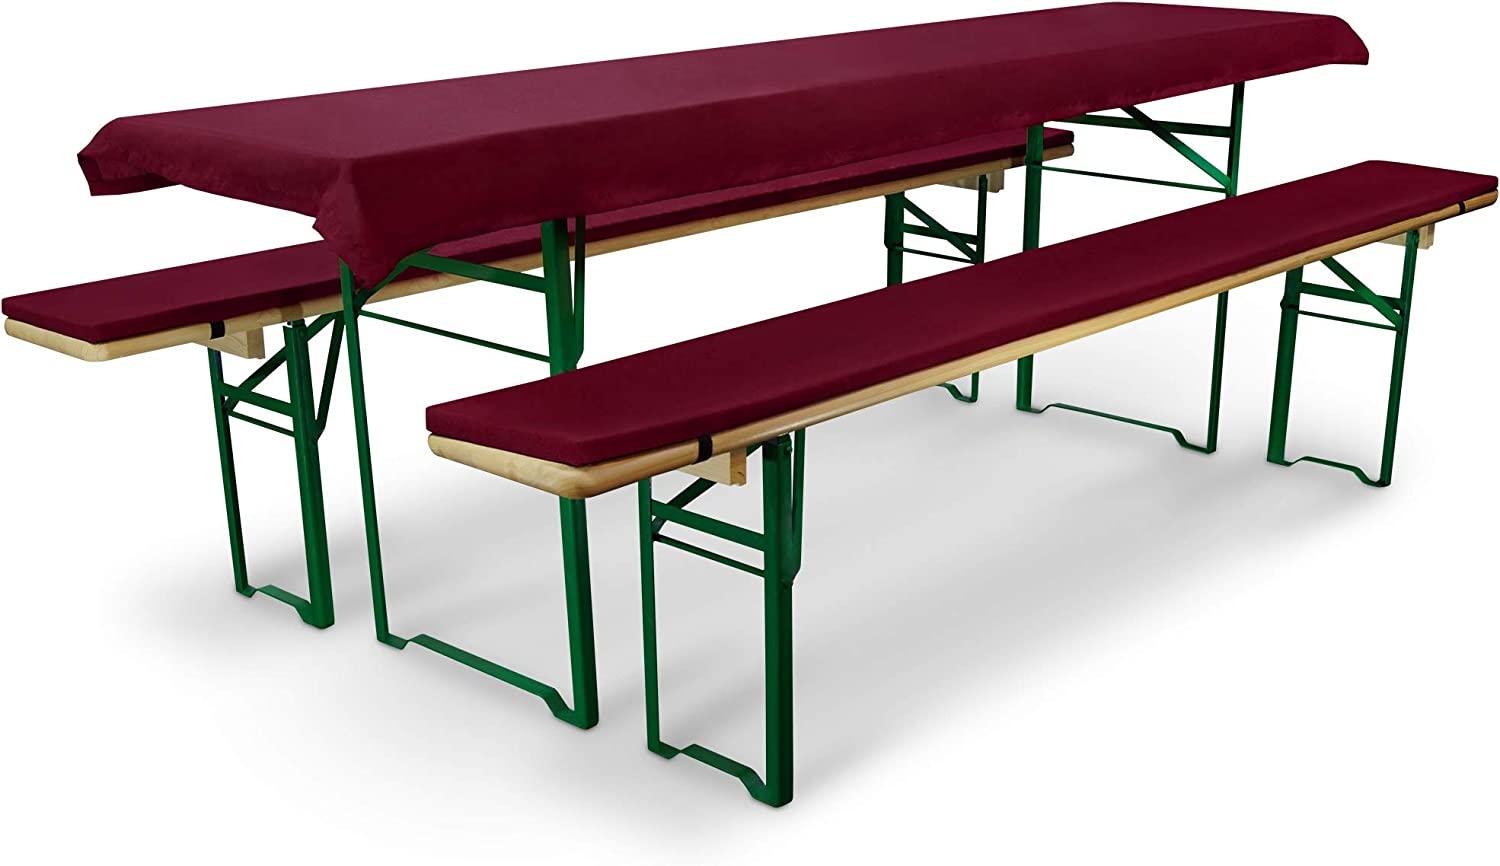 100/% Polyester Beautissu Comfort L Trestle Table Cover Tablecloth For 50cm Wide Table top Light Red